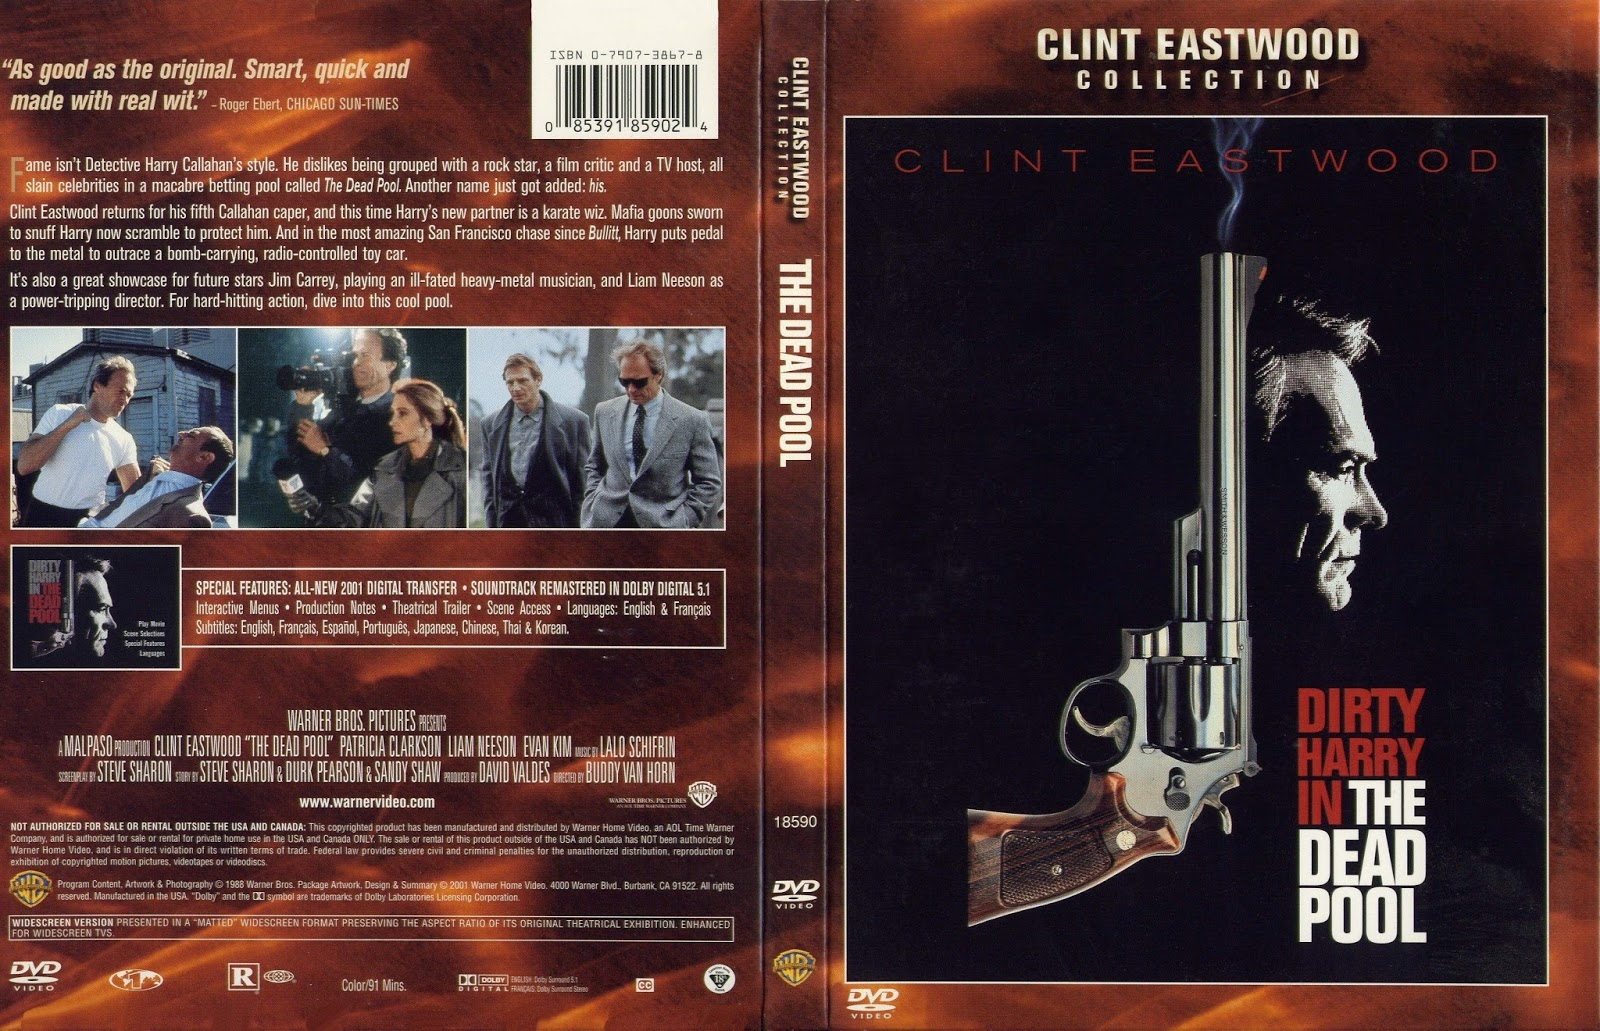 The Clint Eastwood Archive The Dead Pool 1988